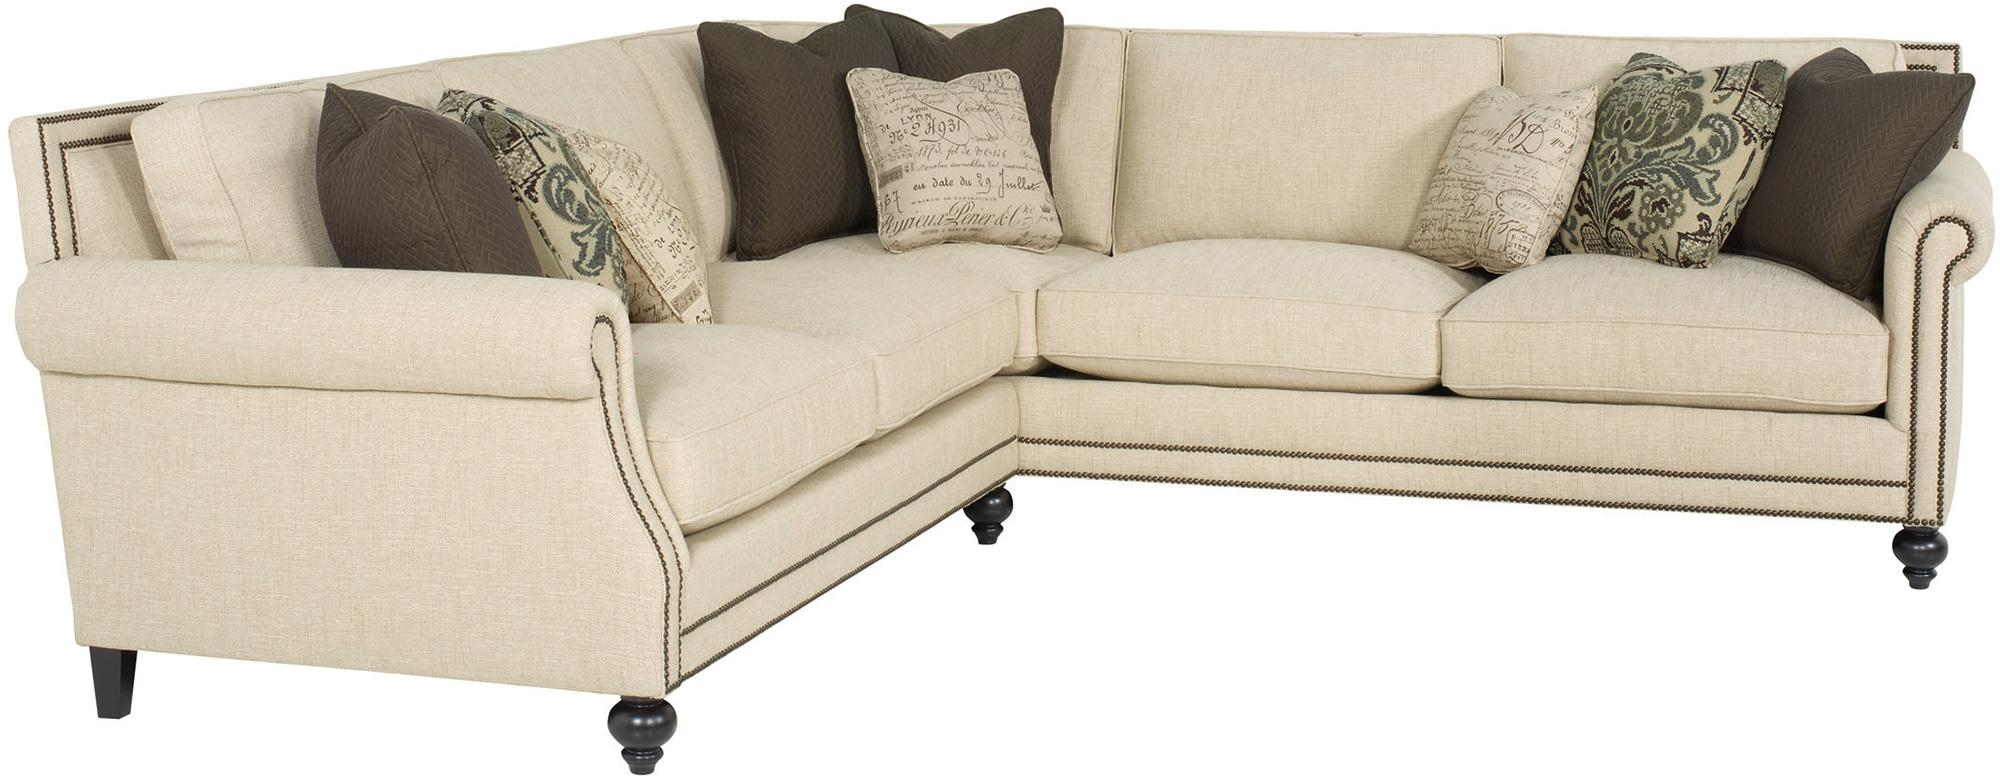 bernhardt brae sectional sofa from friends 20 ideas of sofas